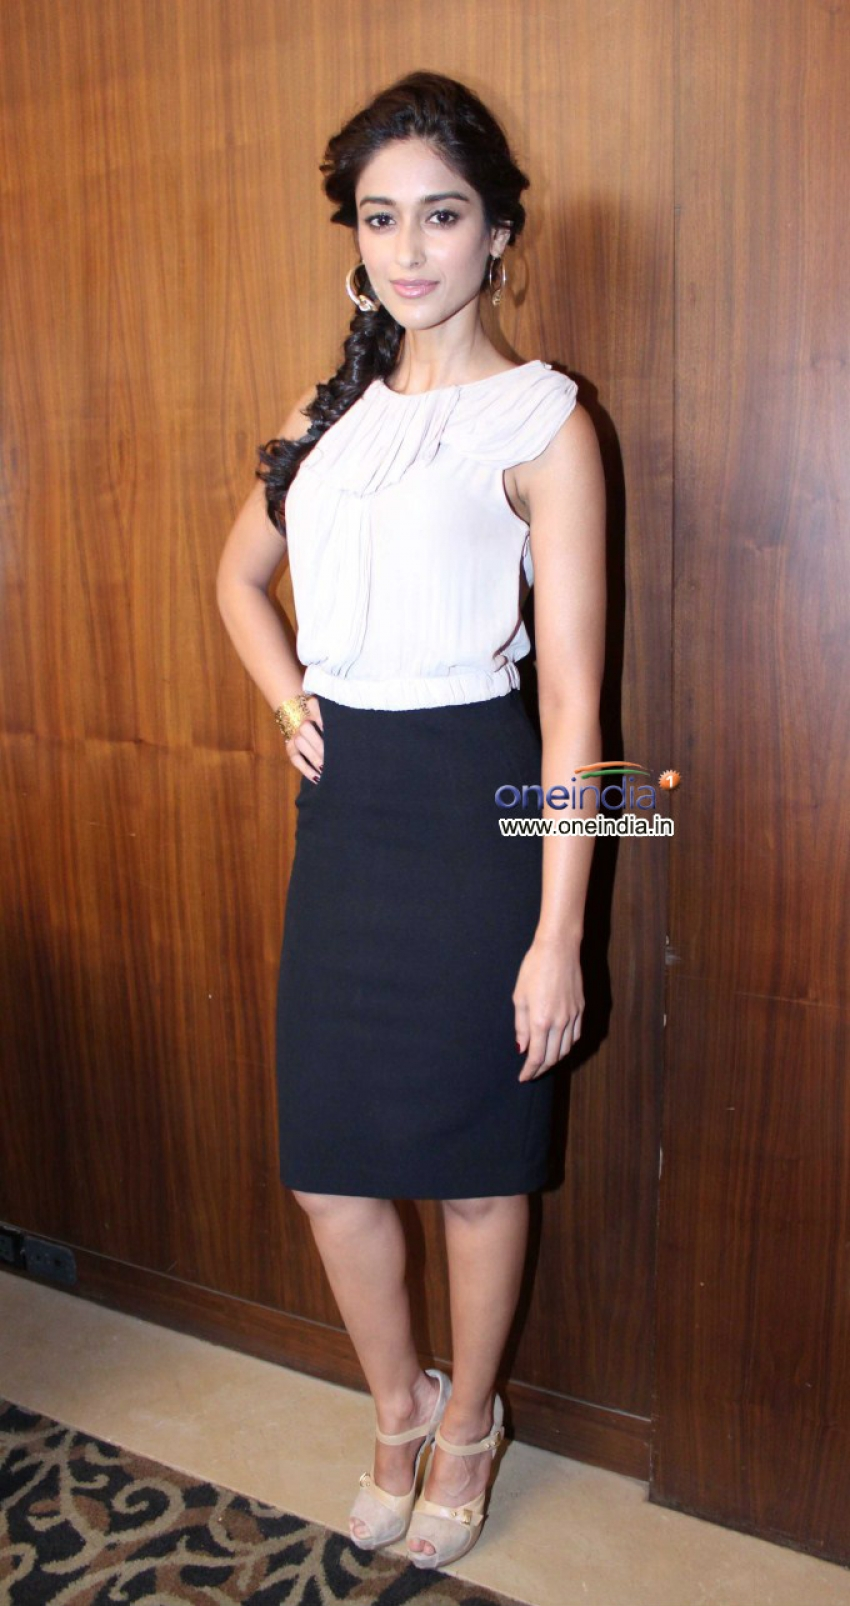 Shahid Kapoor and Ileana D'Cruz promotes film Phata Poster Nikla Hero Photos